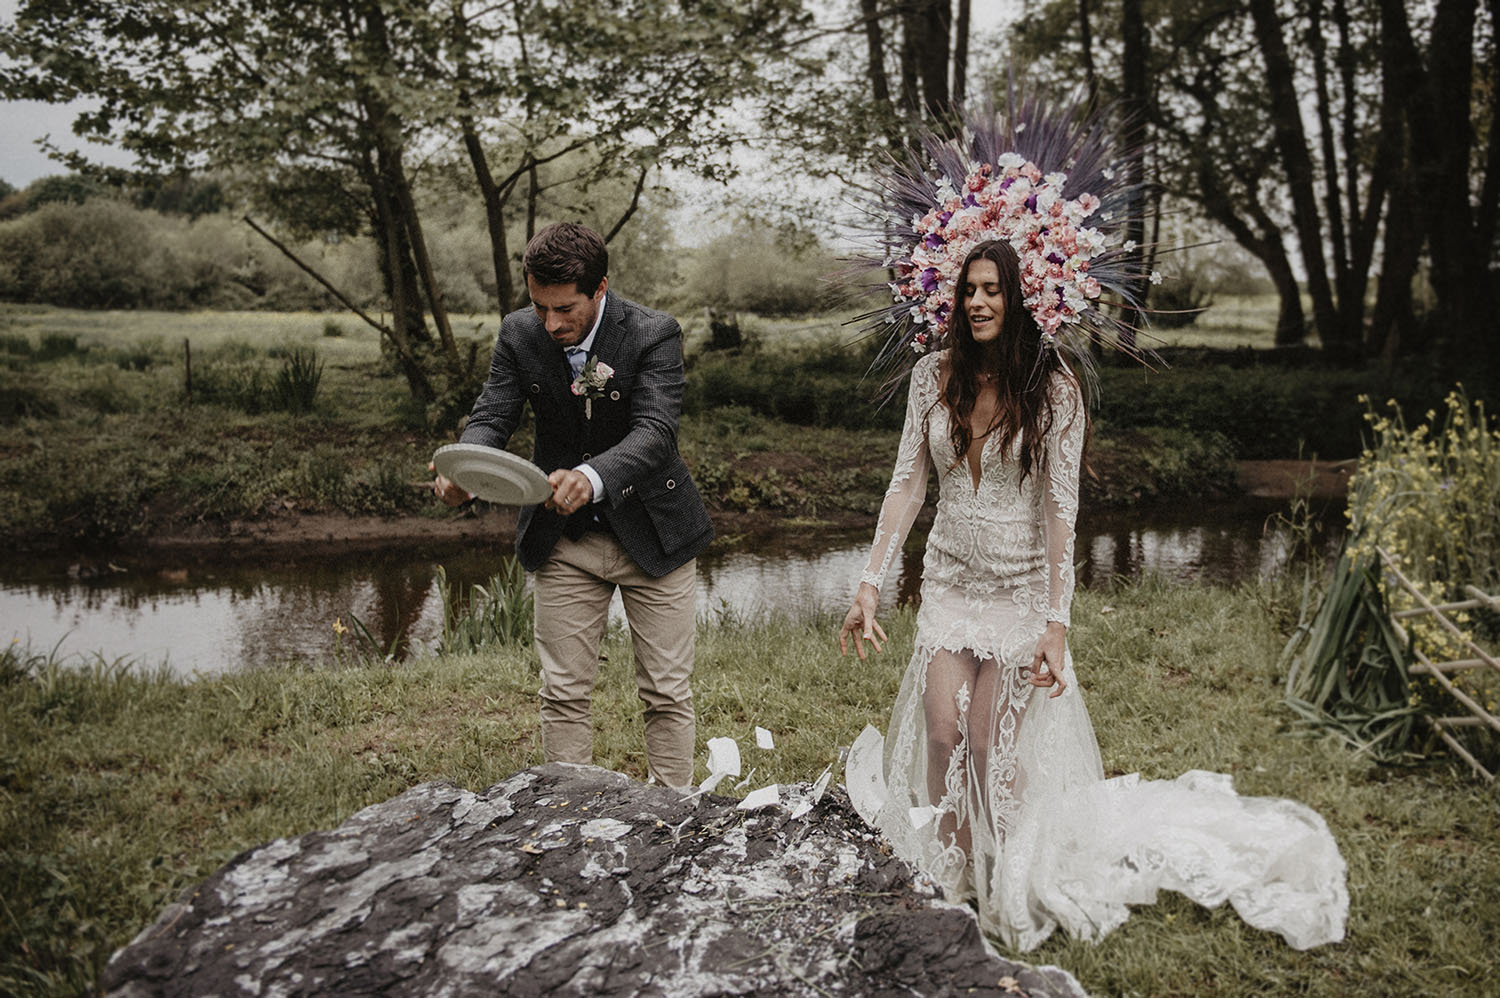 Outdoor folk wedding